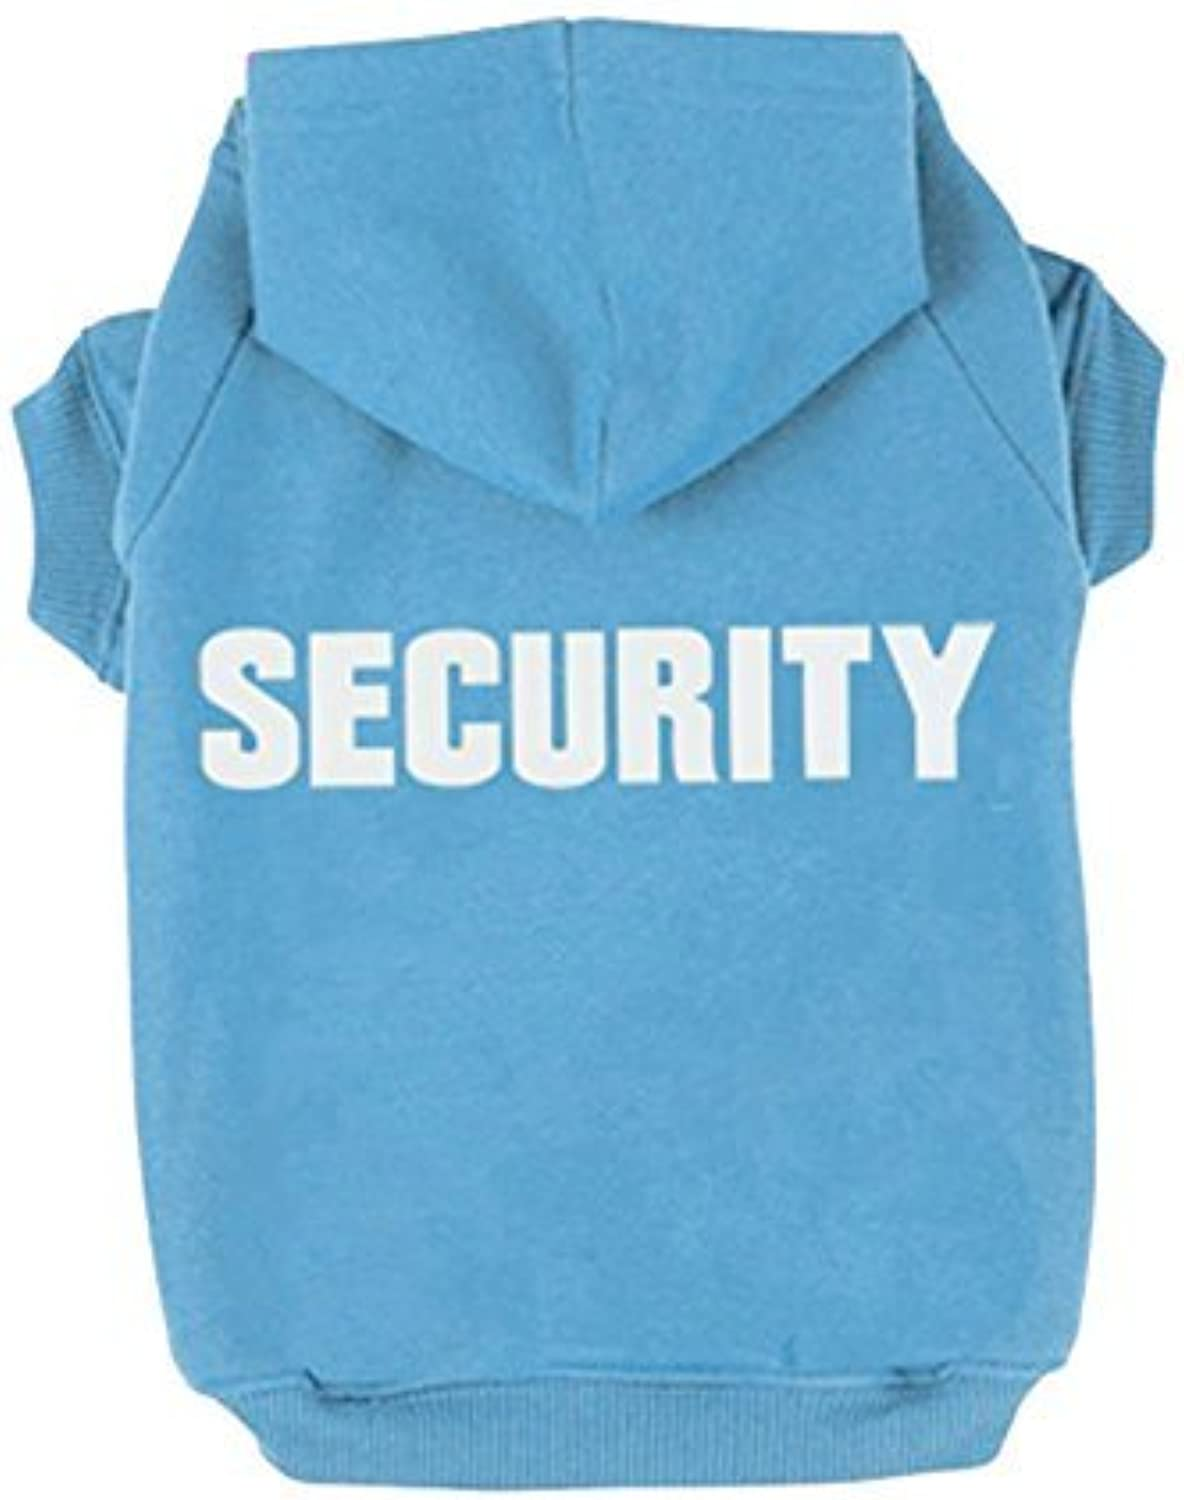 BINGPET Security Patterns Printed Puppy Pet Hoodie Dog Clothes bluee Large